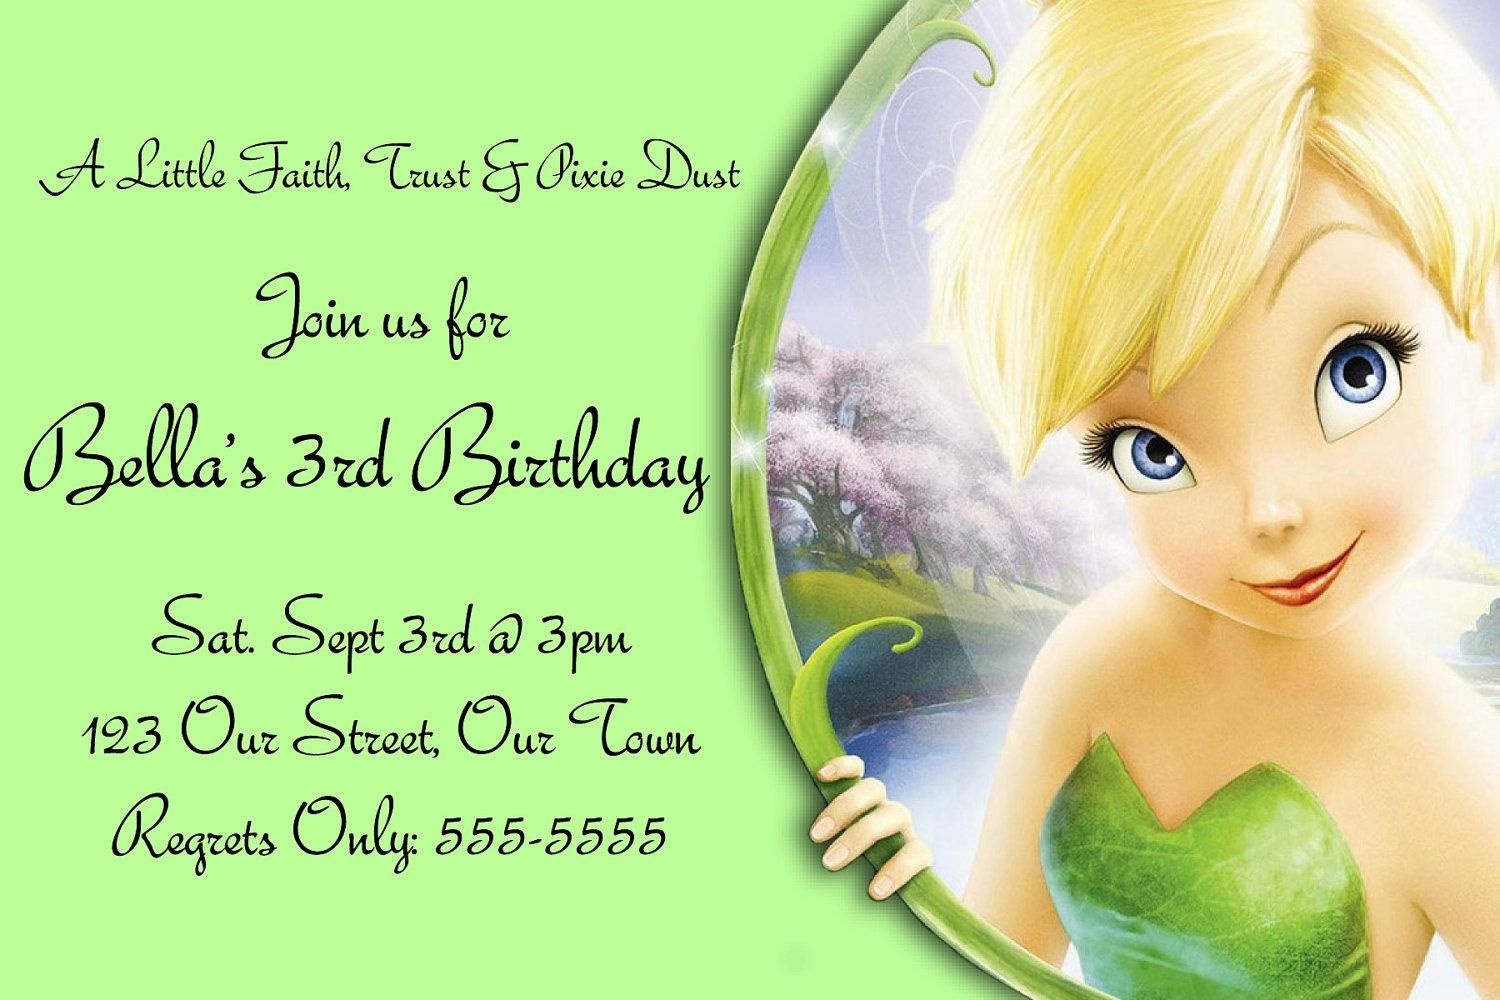 Pindrevio On Free Printable Birthday Invitation In 2019 - Free Tinkerbell Printable Birthday Invitations